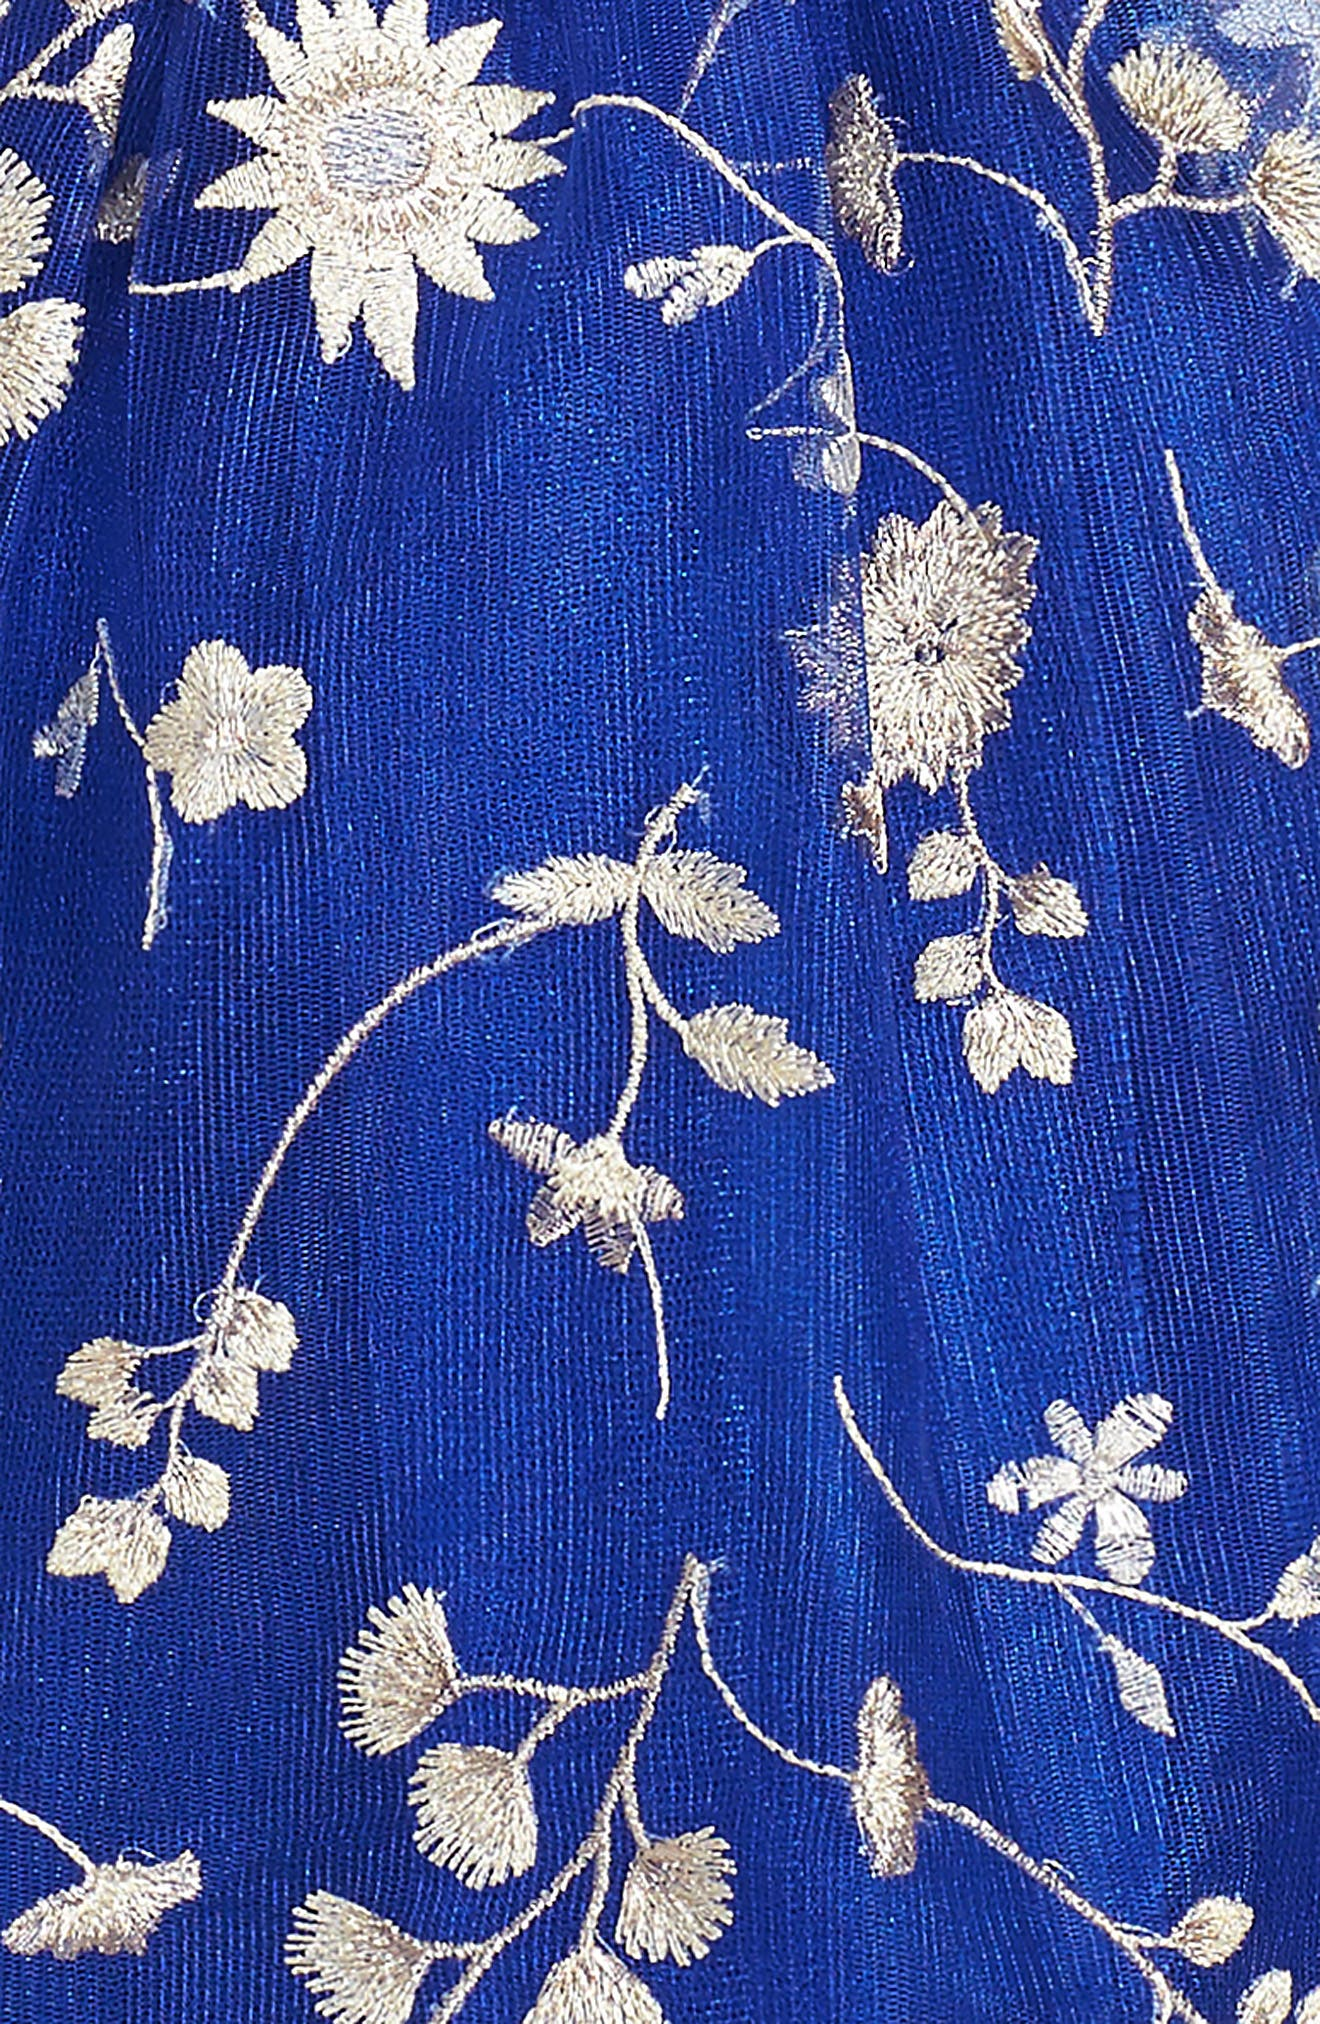 Floral Embroidery Dress,                             Alternate thumbnail 5, color,                             Royal Blue/ Gold